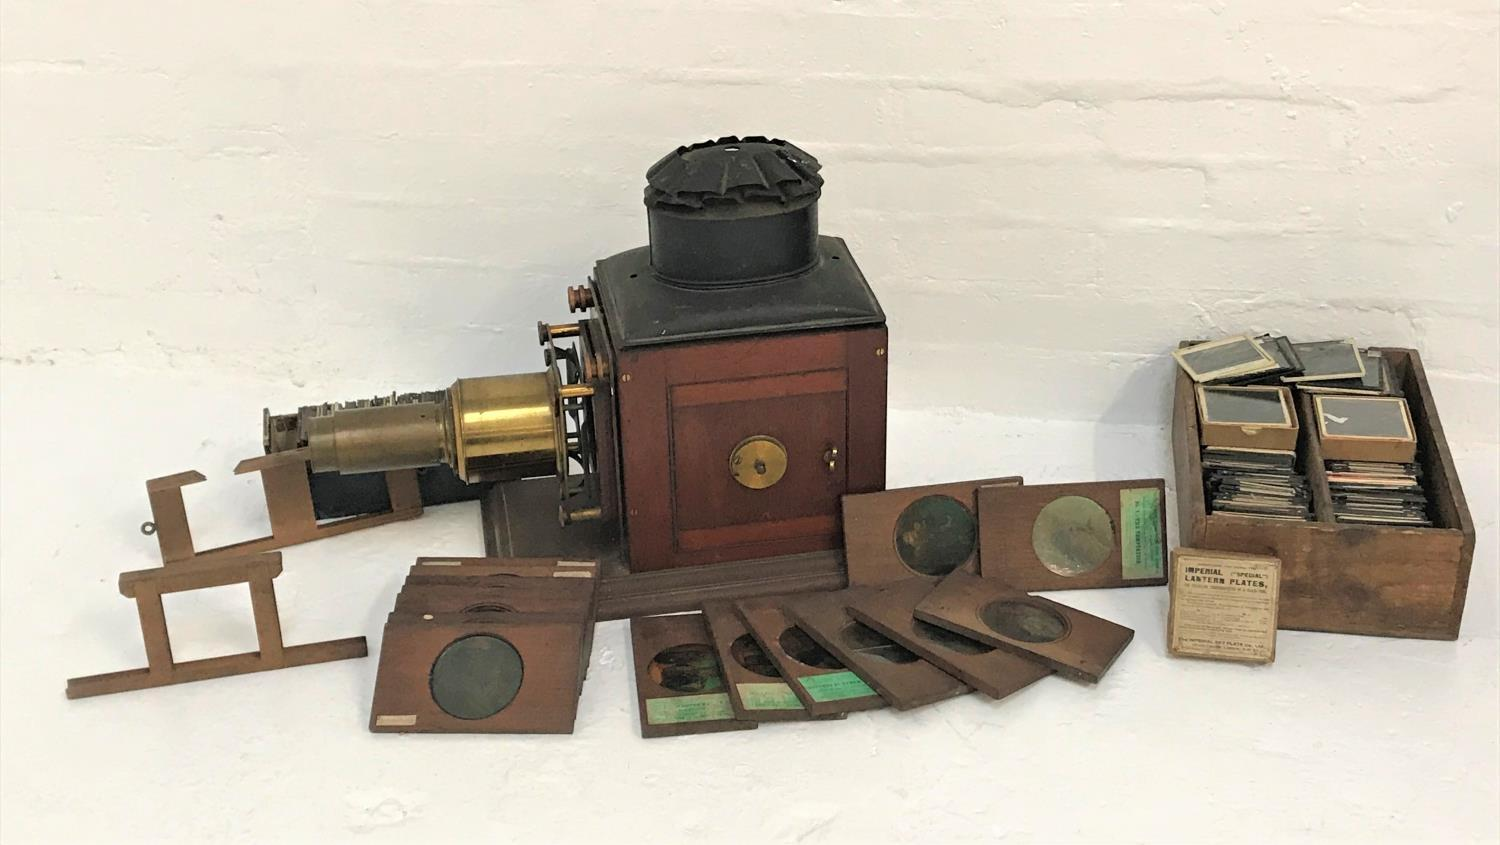 Lot 270 - NEWTON & CO. MAGIC LANTERN PROJECTOR marked 'Opticians to His Majesty the King and the Government. 3